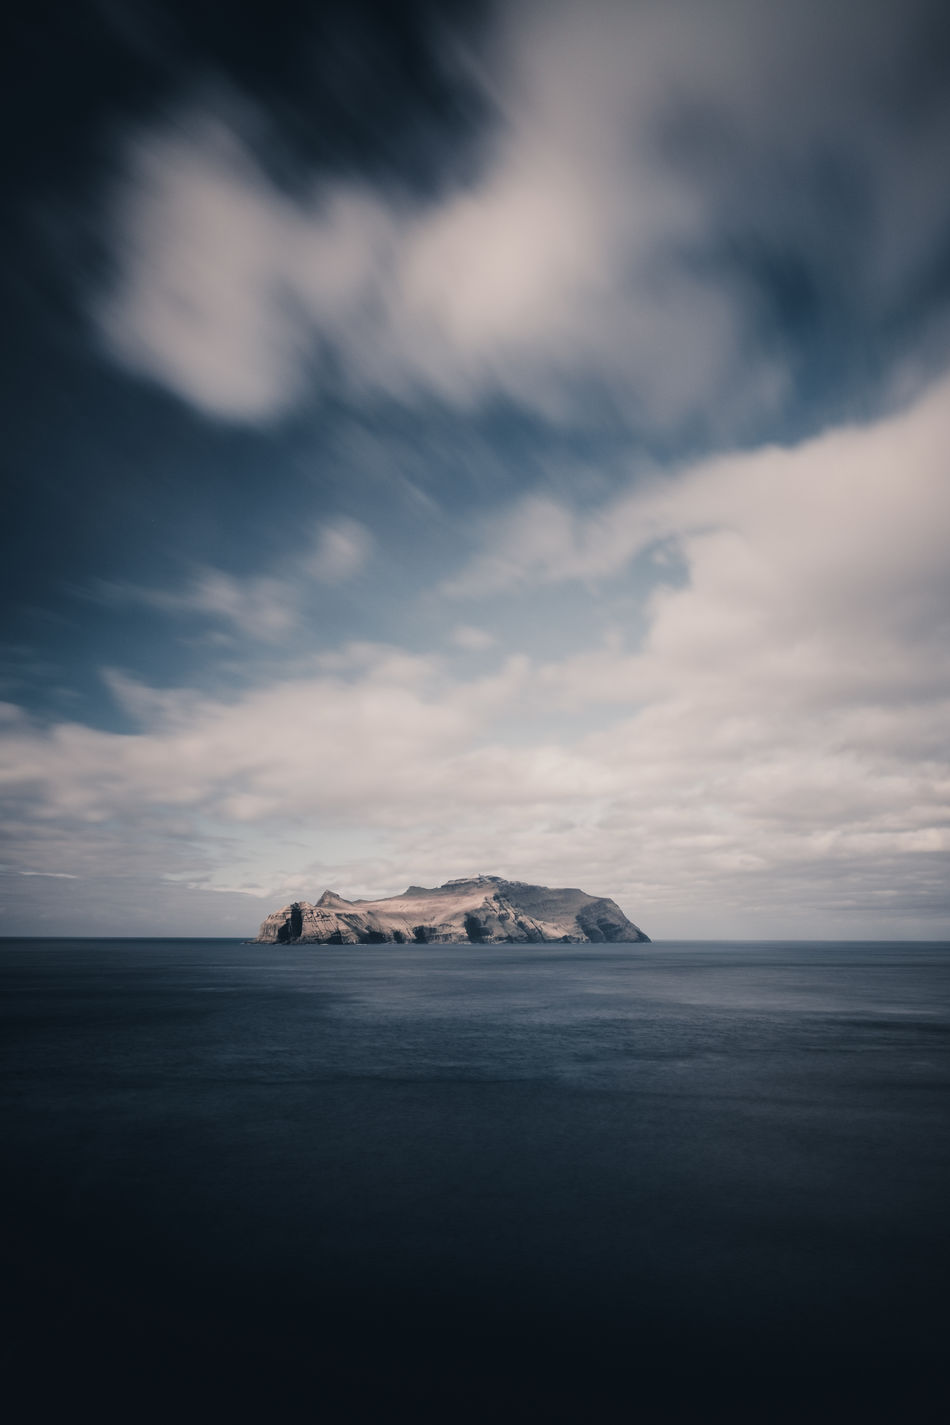 Back home from the Faroe Islands and so impressed! This country is just breathtaking - waterfalls, snow covered mountains and the ocean all around! I really fell in love with these 18 islands in the middle of nowhere. Location: Mykines, Faroe Islands Equipment: Fujifilm X-T2 + XF14 F2.8 R www.instagram.com/nils_leithold Beauty In Nature Cloud - Sky Clouds Cold Temperature Faroe Islands Fine Art Photography Fujifilm Färöer Iceberg Island Long Exposure Mykines Nature Night No People Ocean Outdoors Scenics Sea Sky Snow Tranquil Scene Tranquility Water Winter